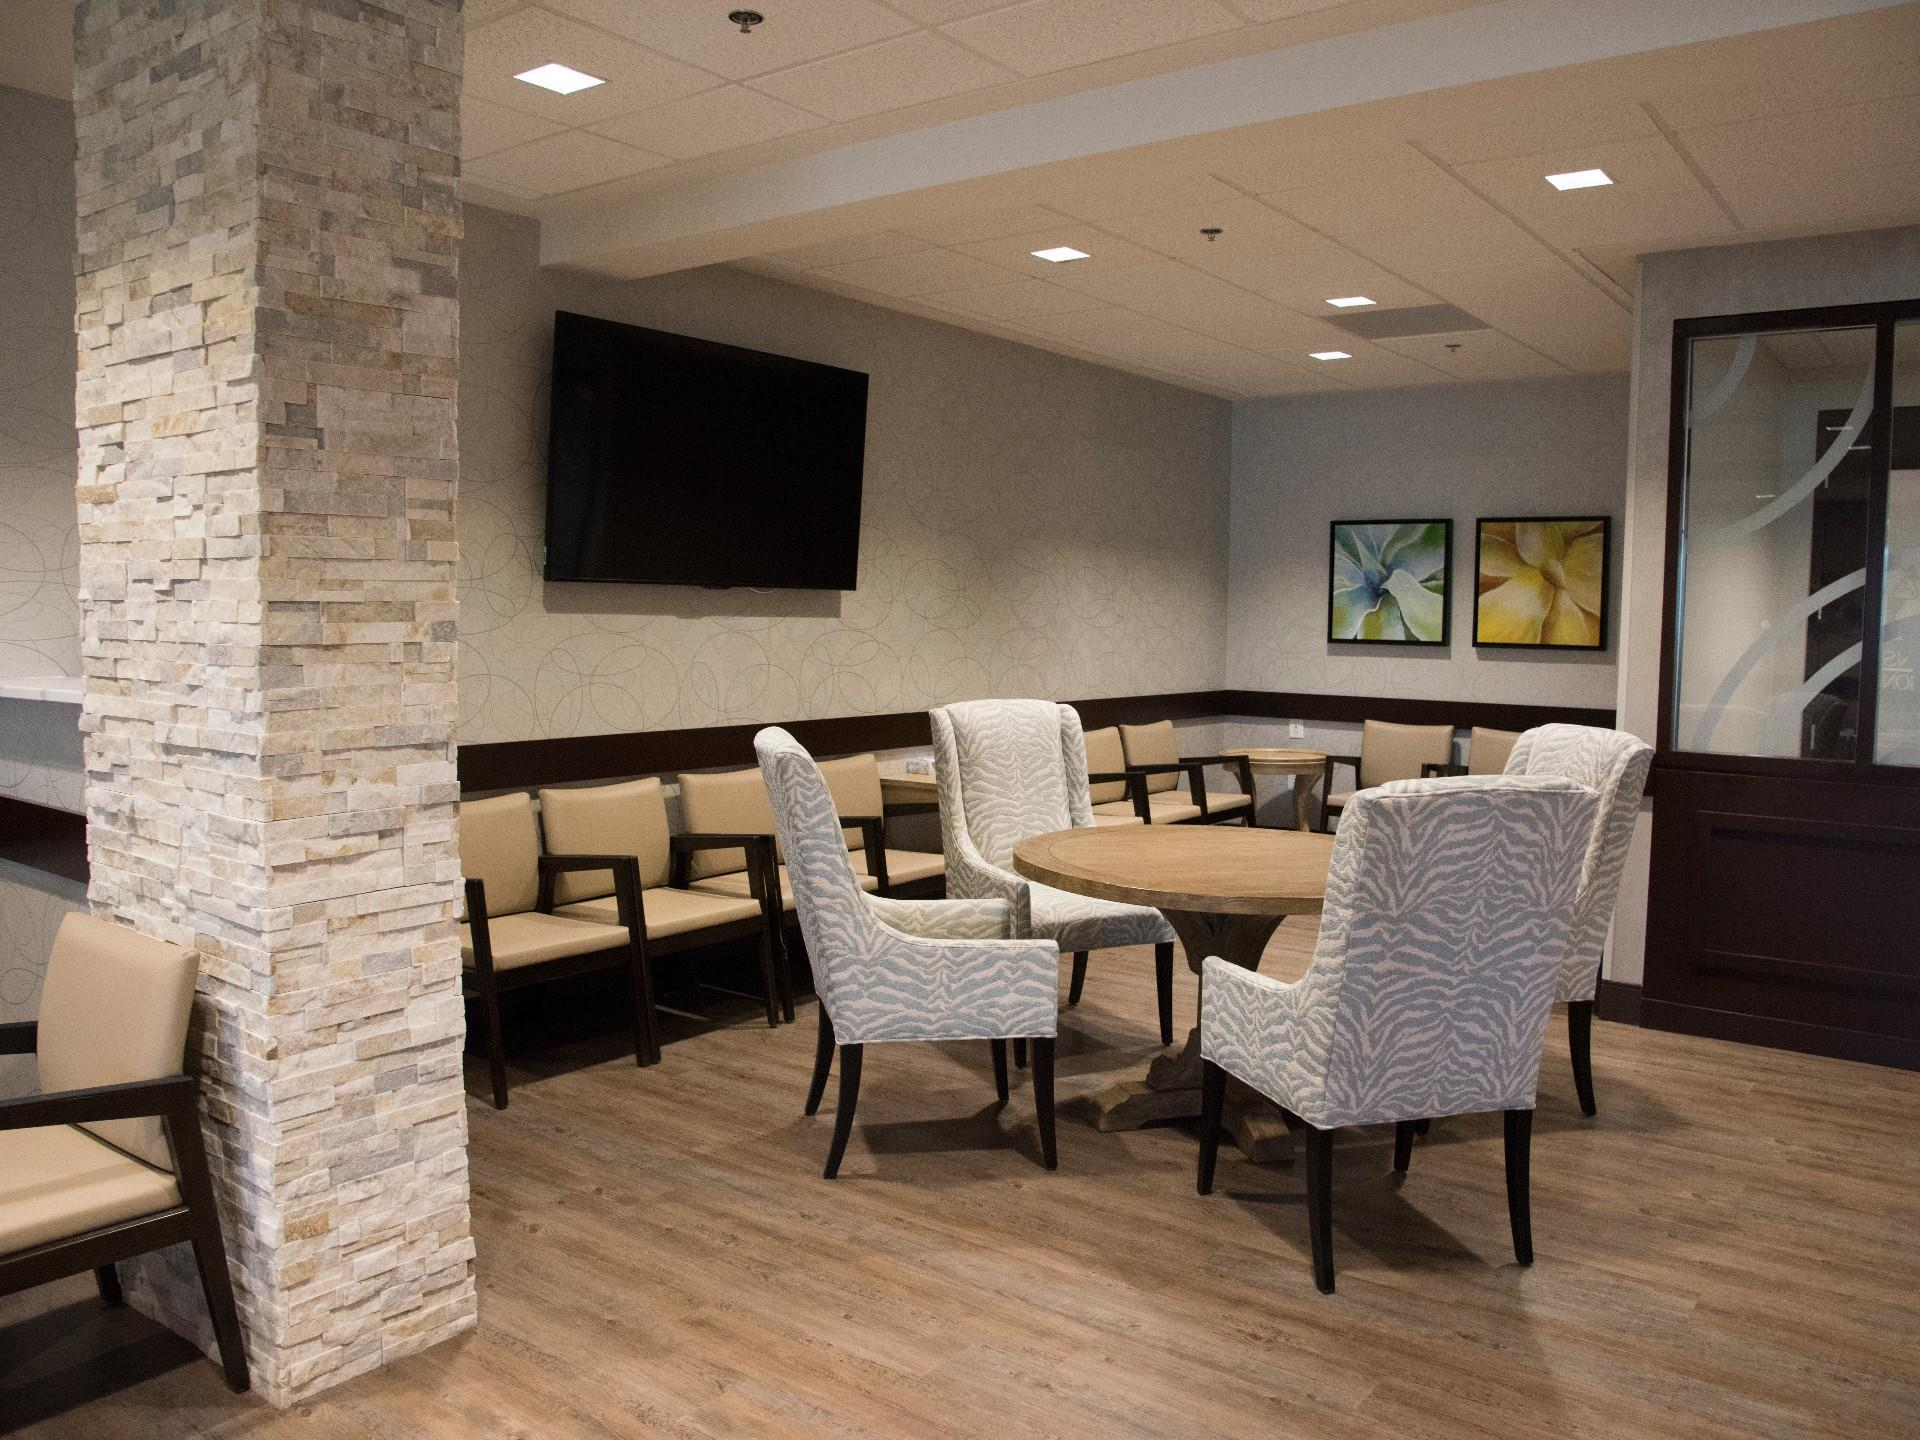 stone column inside with table and comfy arm chairs with flat screen tv mounted on wall and mor echairs against wall